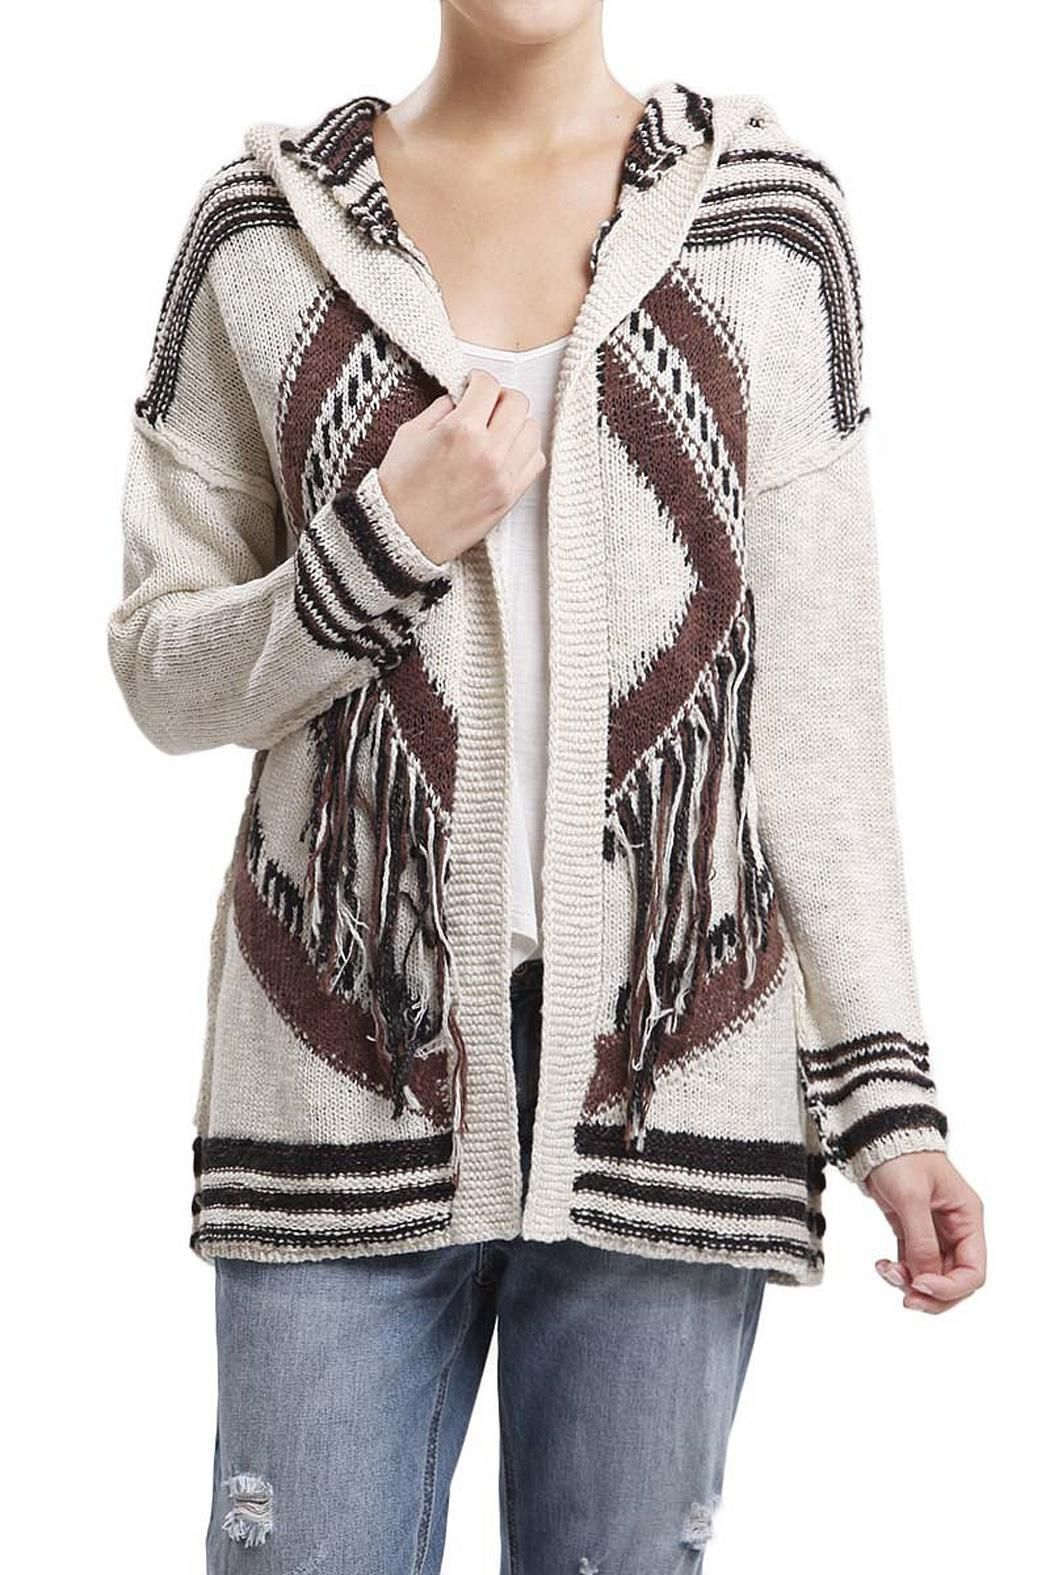 Blu Pepper Western Fringe Cardigan | Blu pepper, Hooded cardigan ...